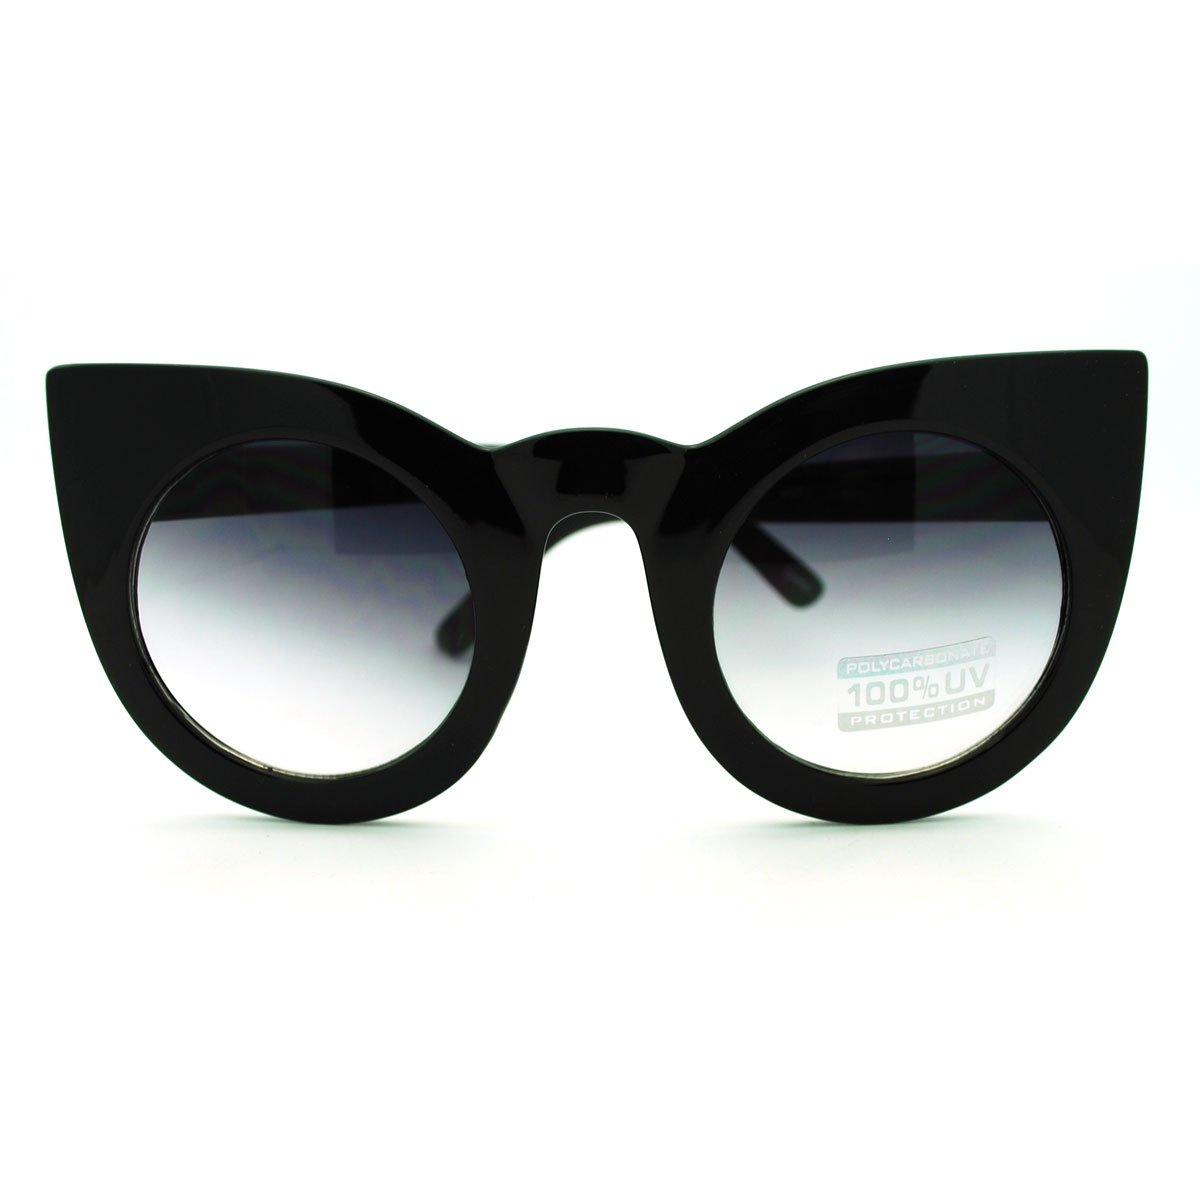 Oversized Round Cateye Sunglasses Womens Vintage Retro Eyewear 1